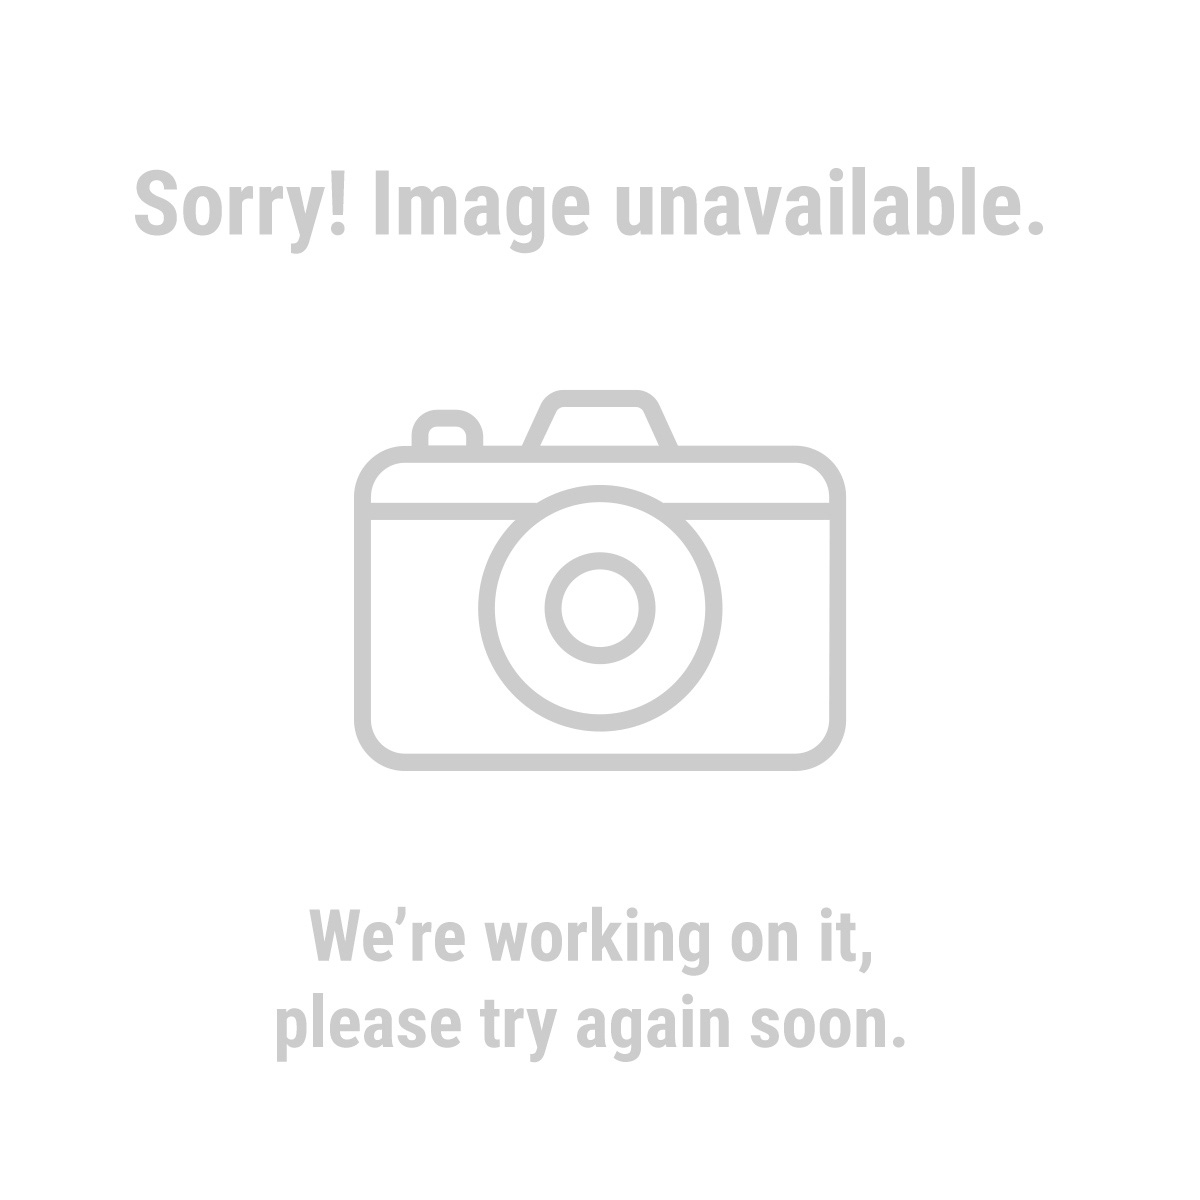 Central Hydraulics 1667 12 Ton A-Frame Industrial Heavy Duty Floor Shop Press